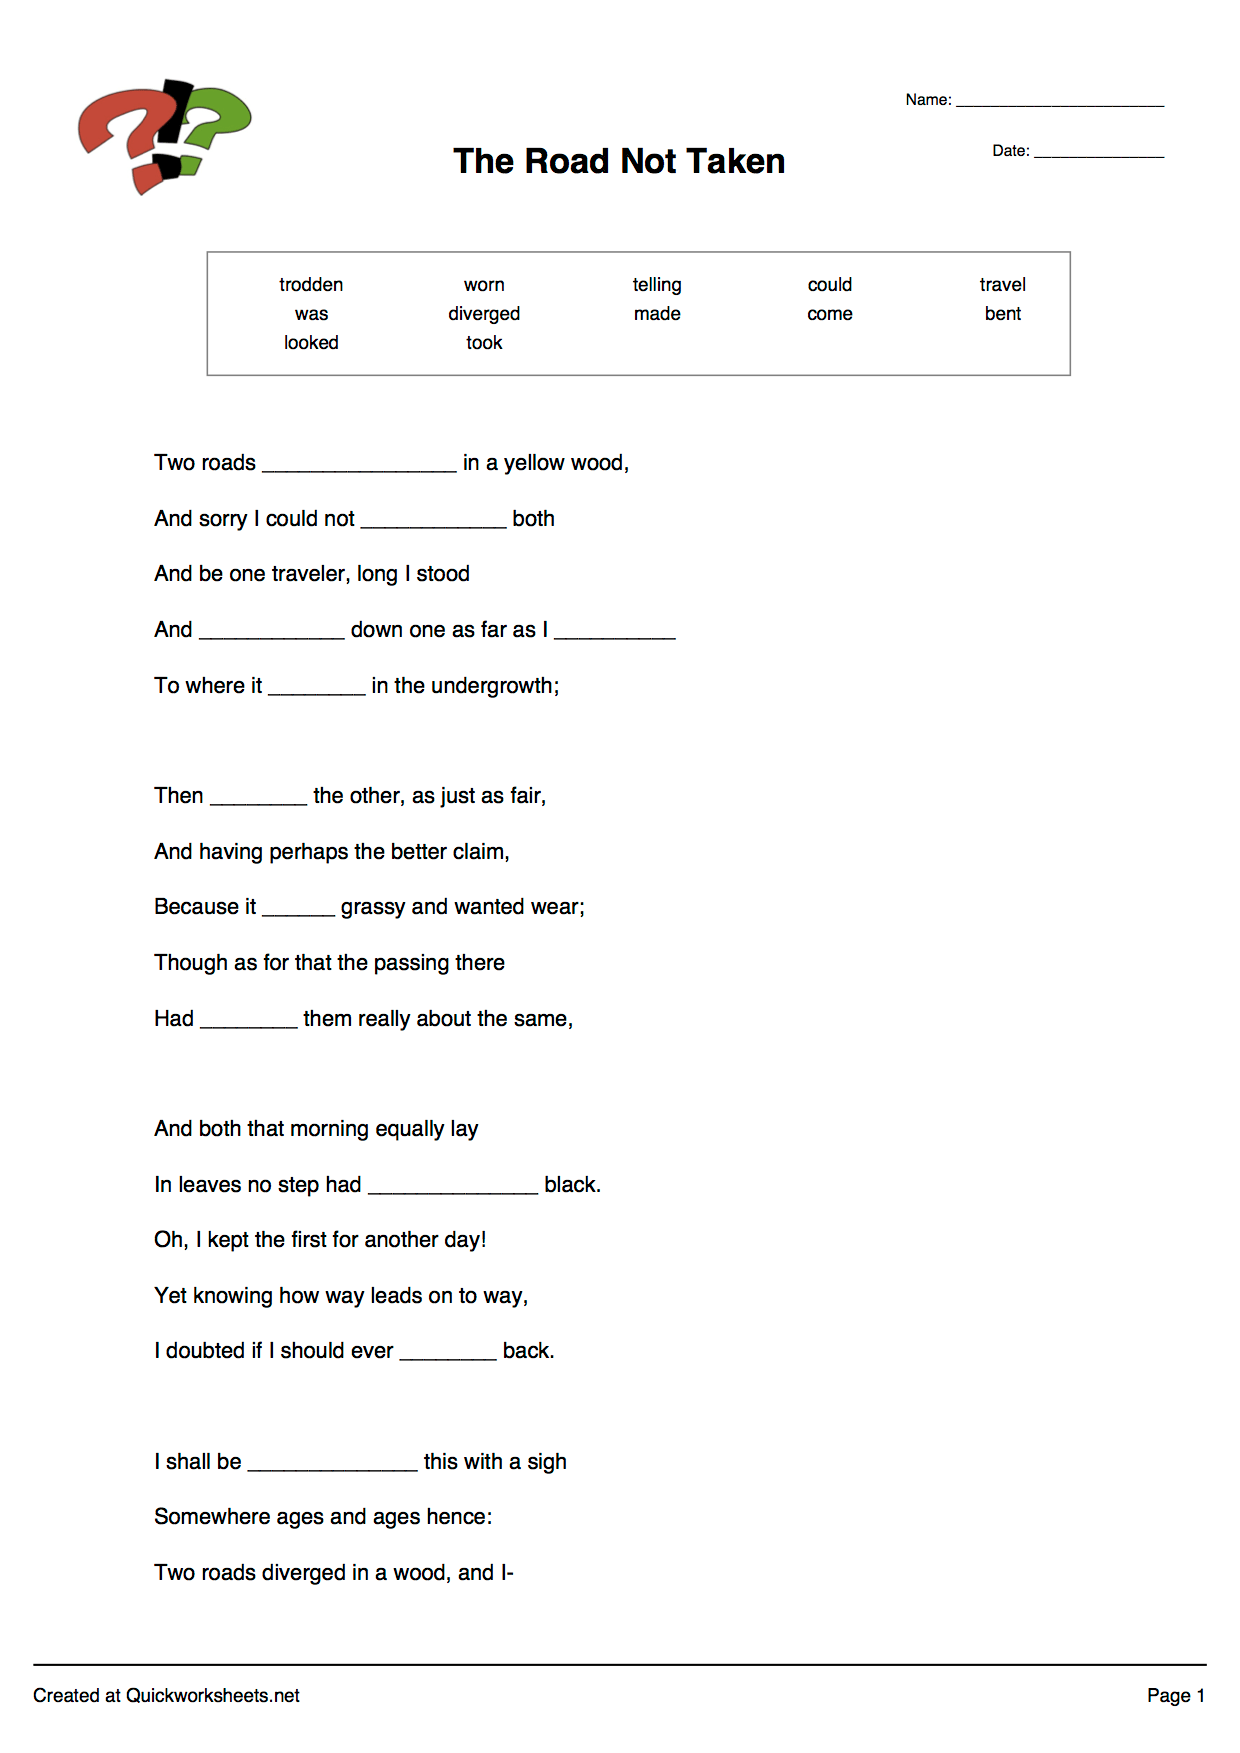 Fill In The Blanks Passage Cloze Test Worksheet Maker